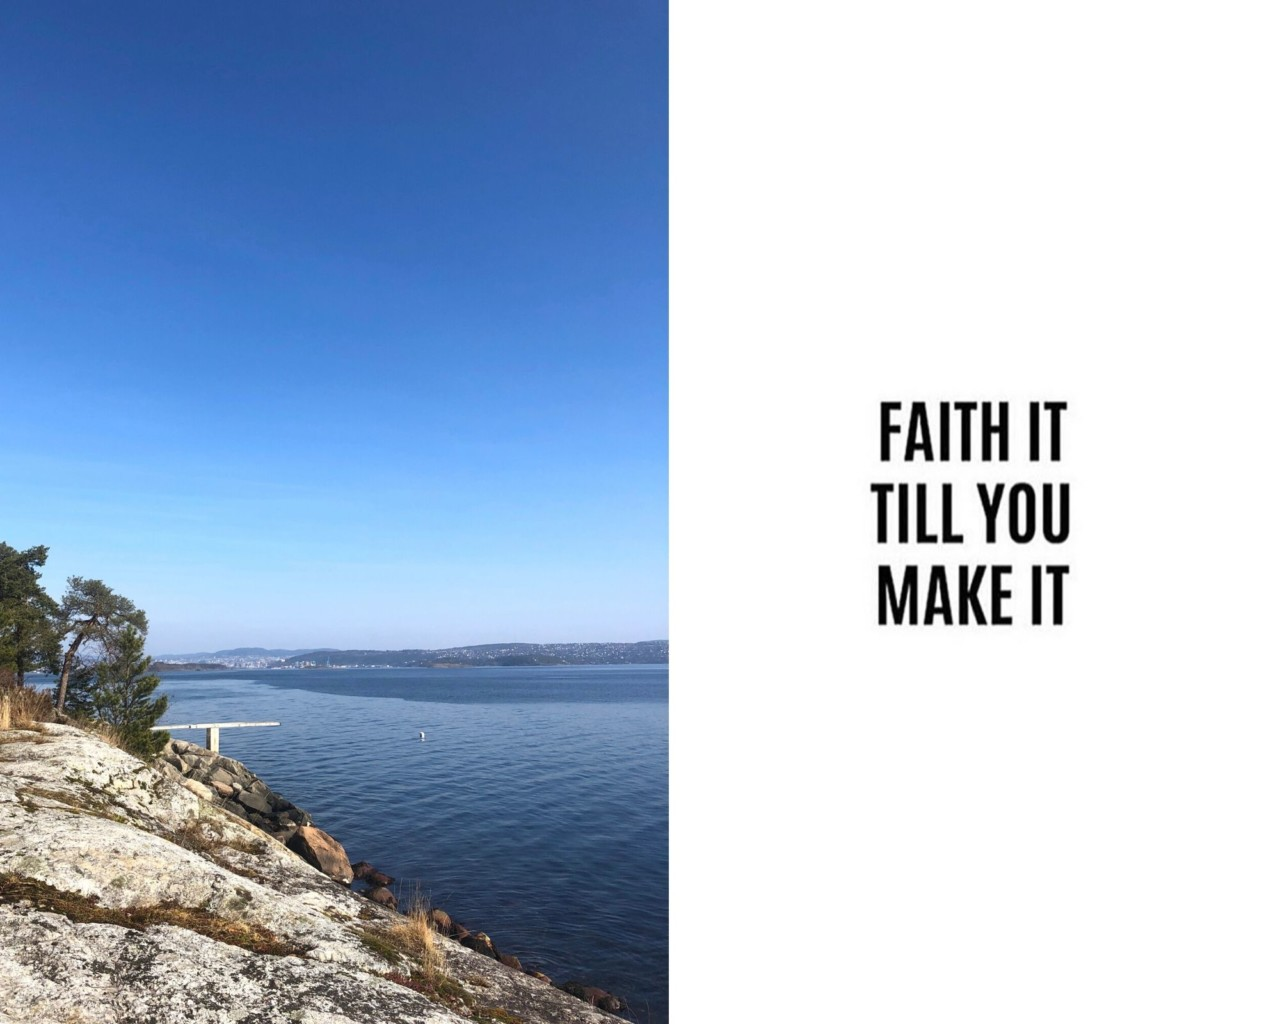 faith-it-till-you-make-it-hav-stupebrett-kyststien-nesodden